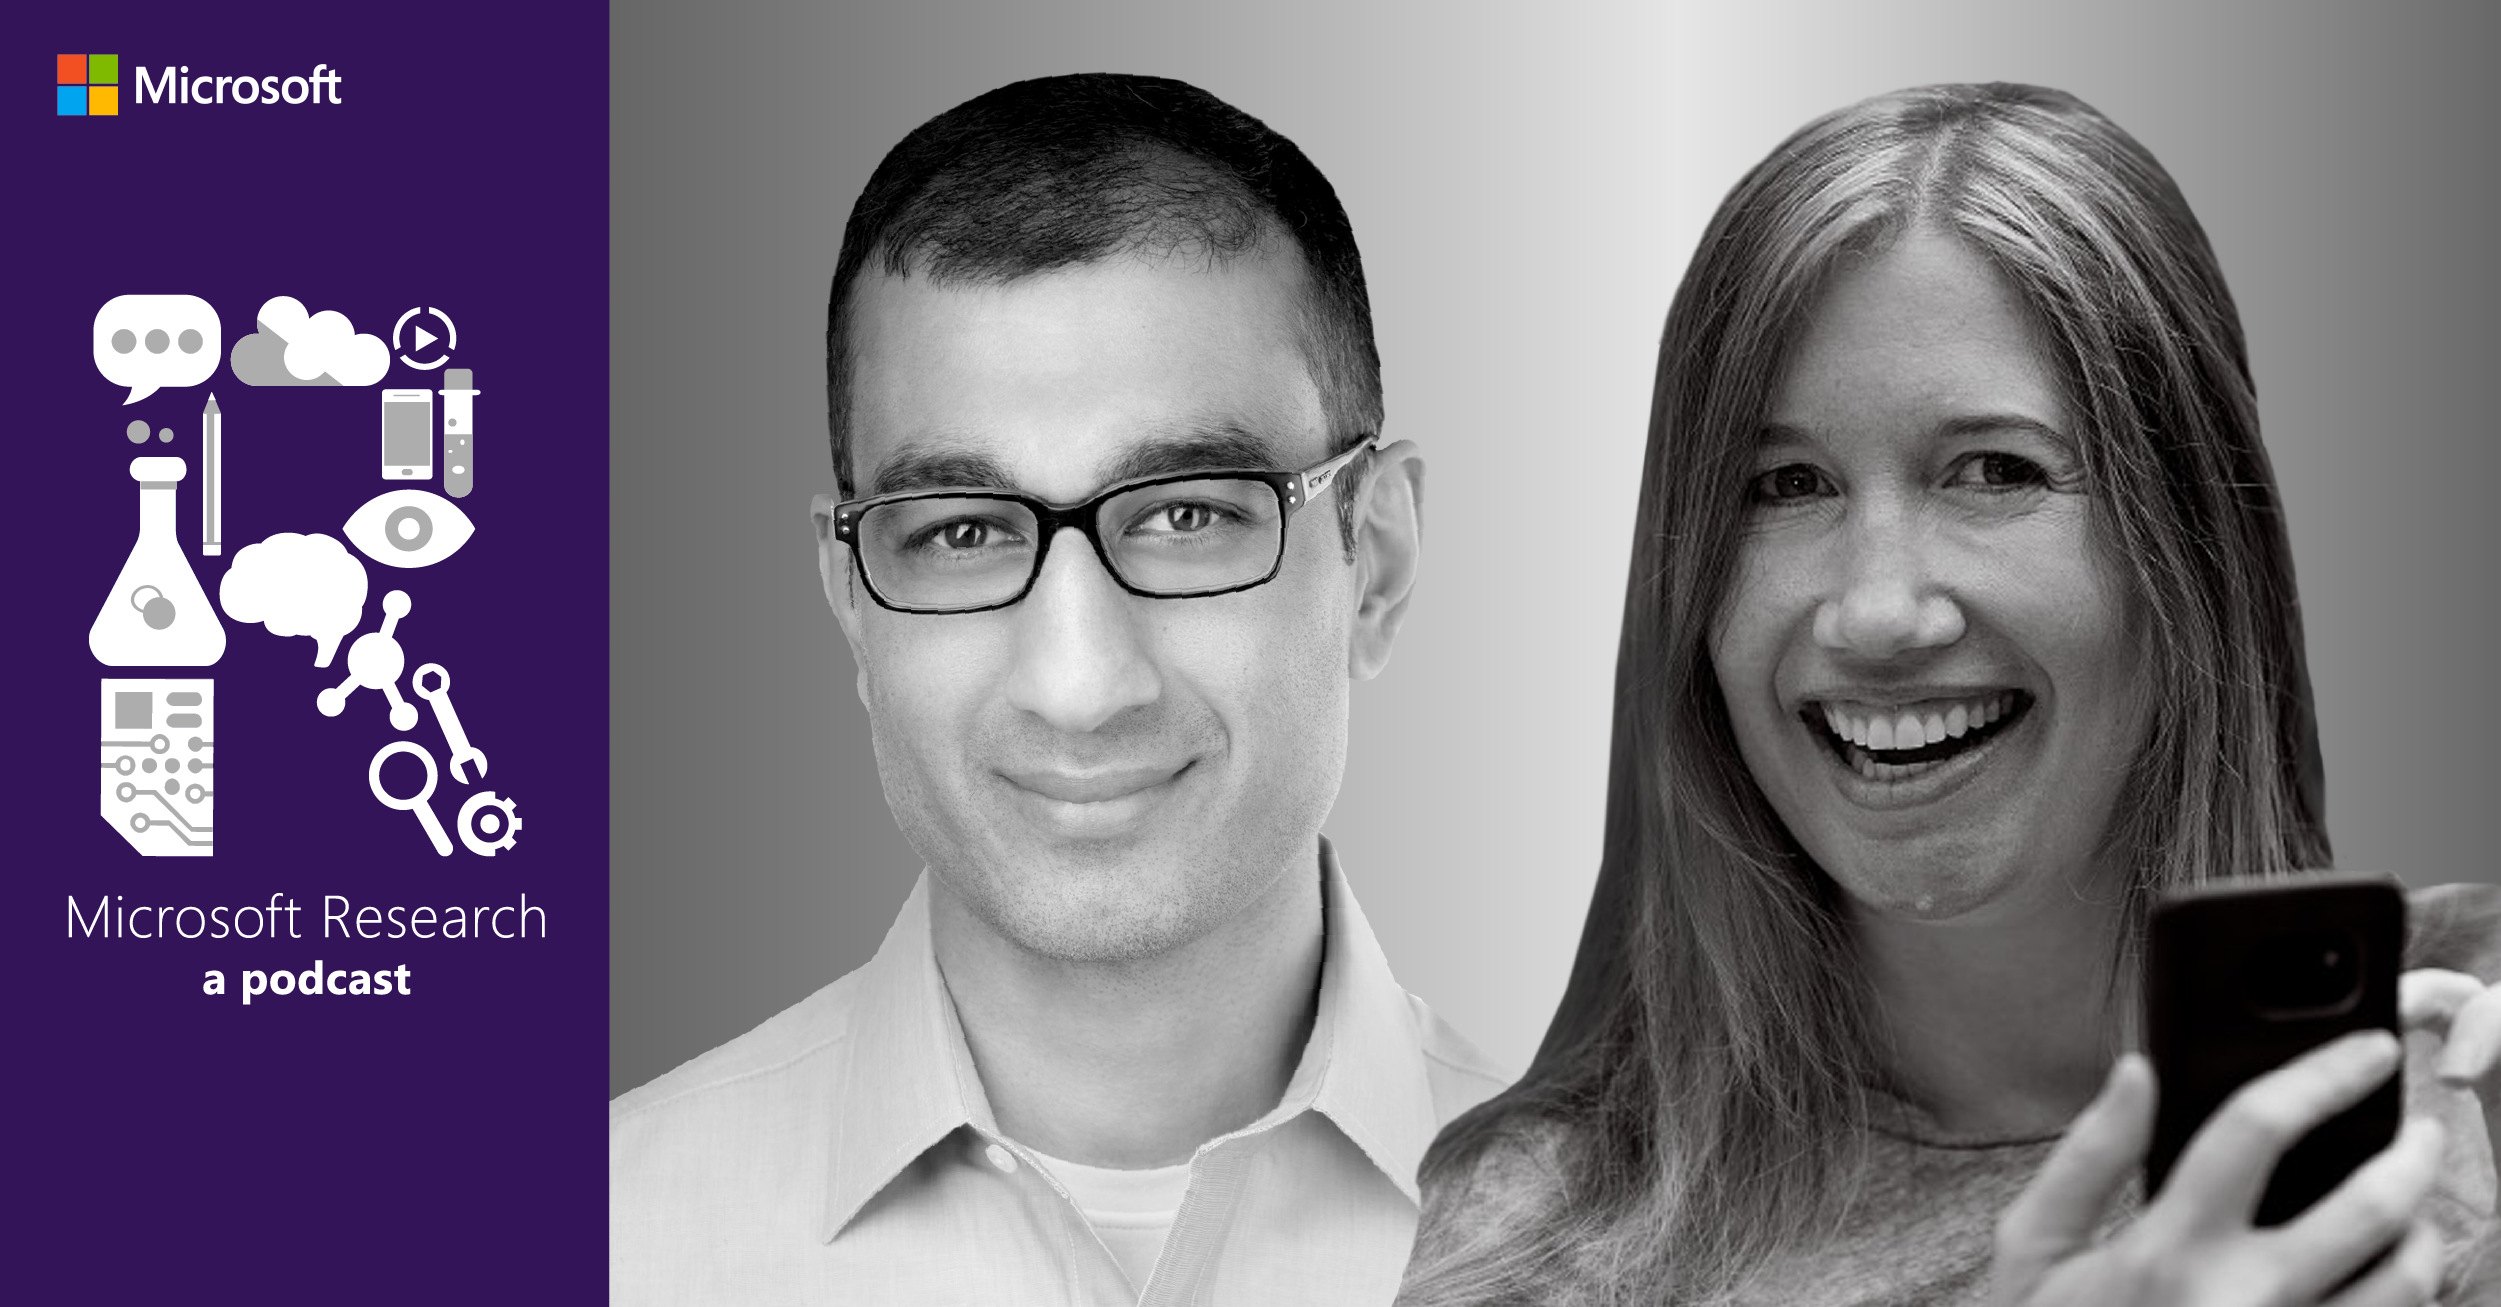 New Future of Work: How remote and hybrid work will shape workplaces and society with Jaime Teevan and Siddharth Suri